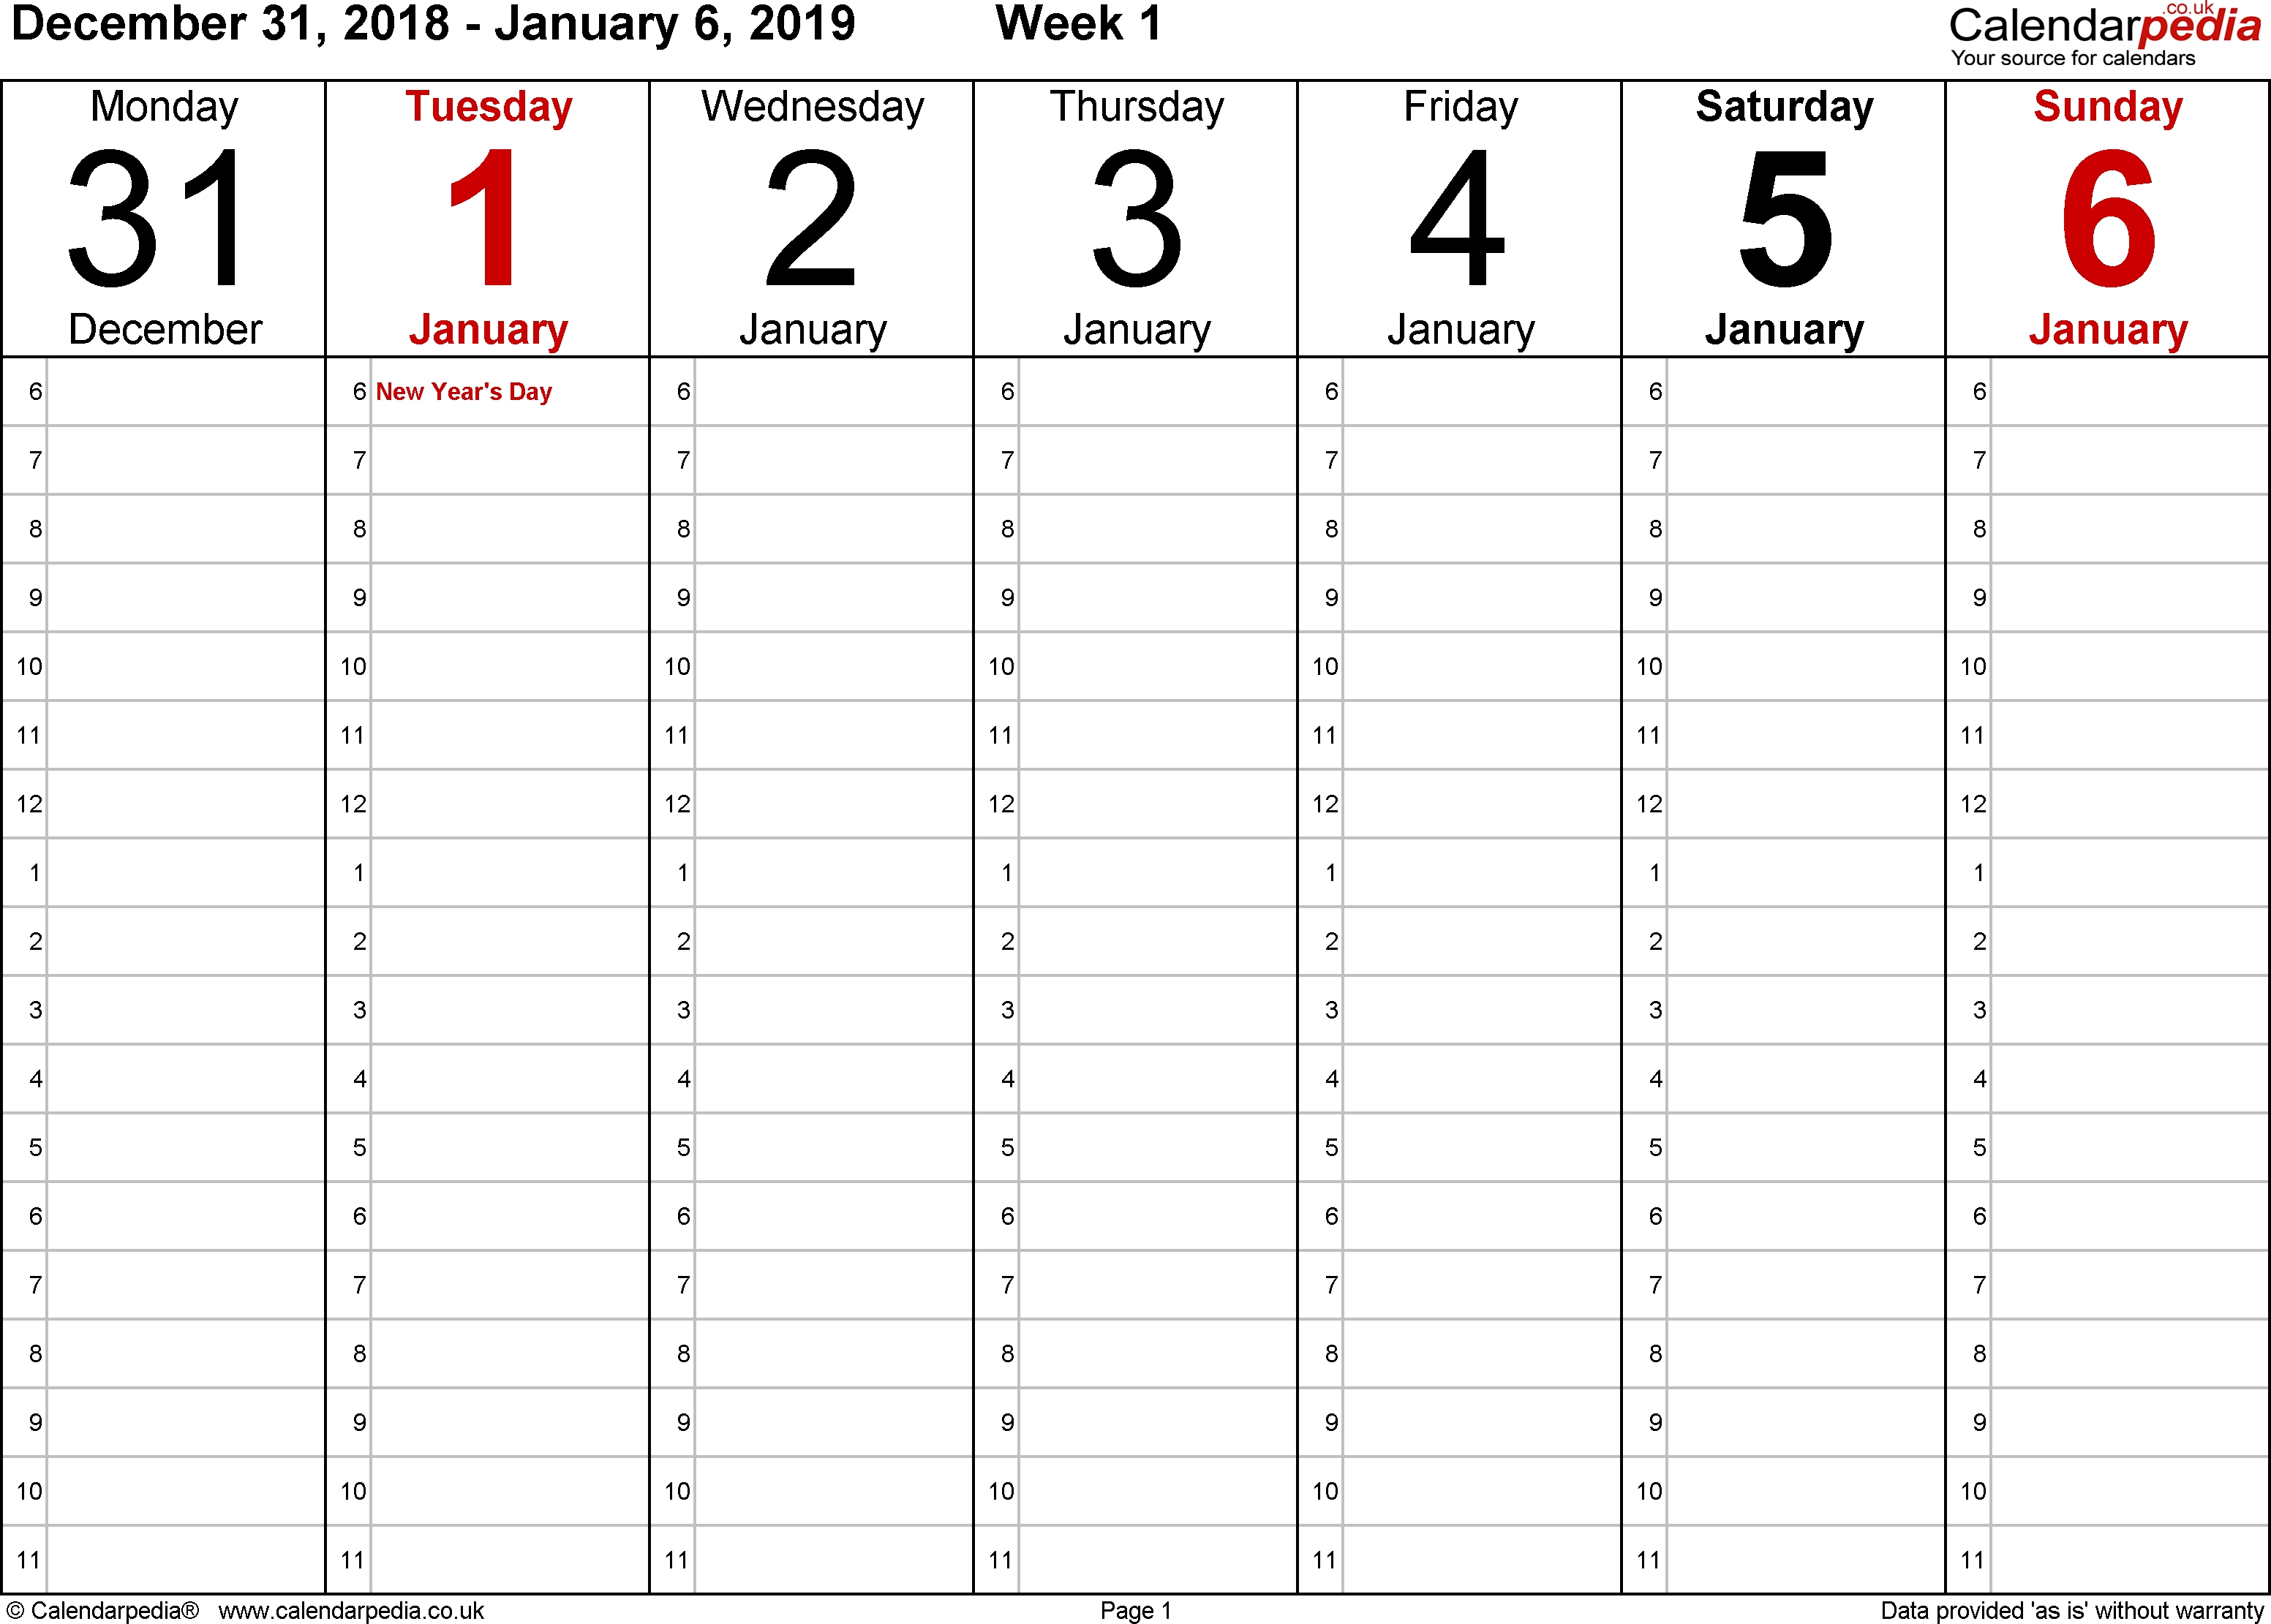 Calendar Template Word Weekly Appointment | Smorad 6 Week Calendar Template Word